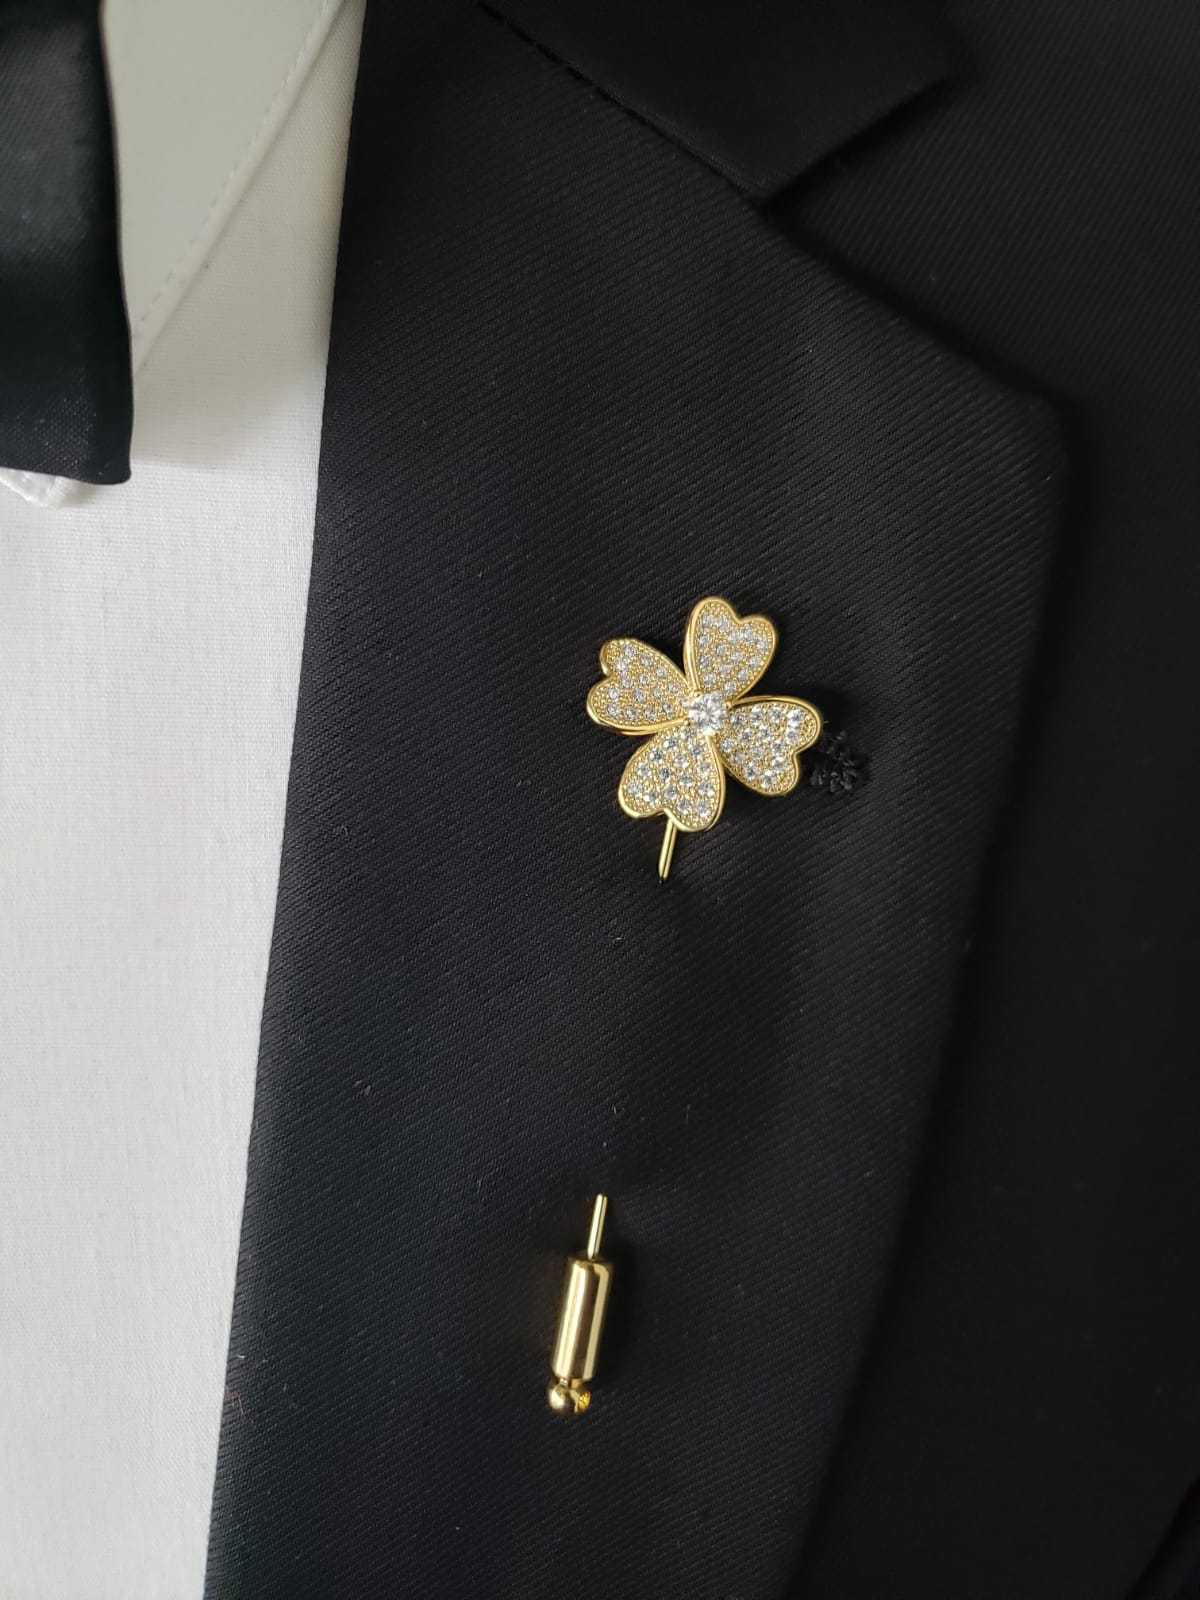 Gold Four Leaf Clover lapel pin